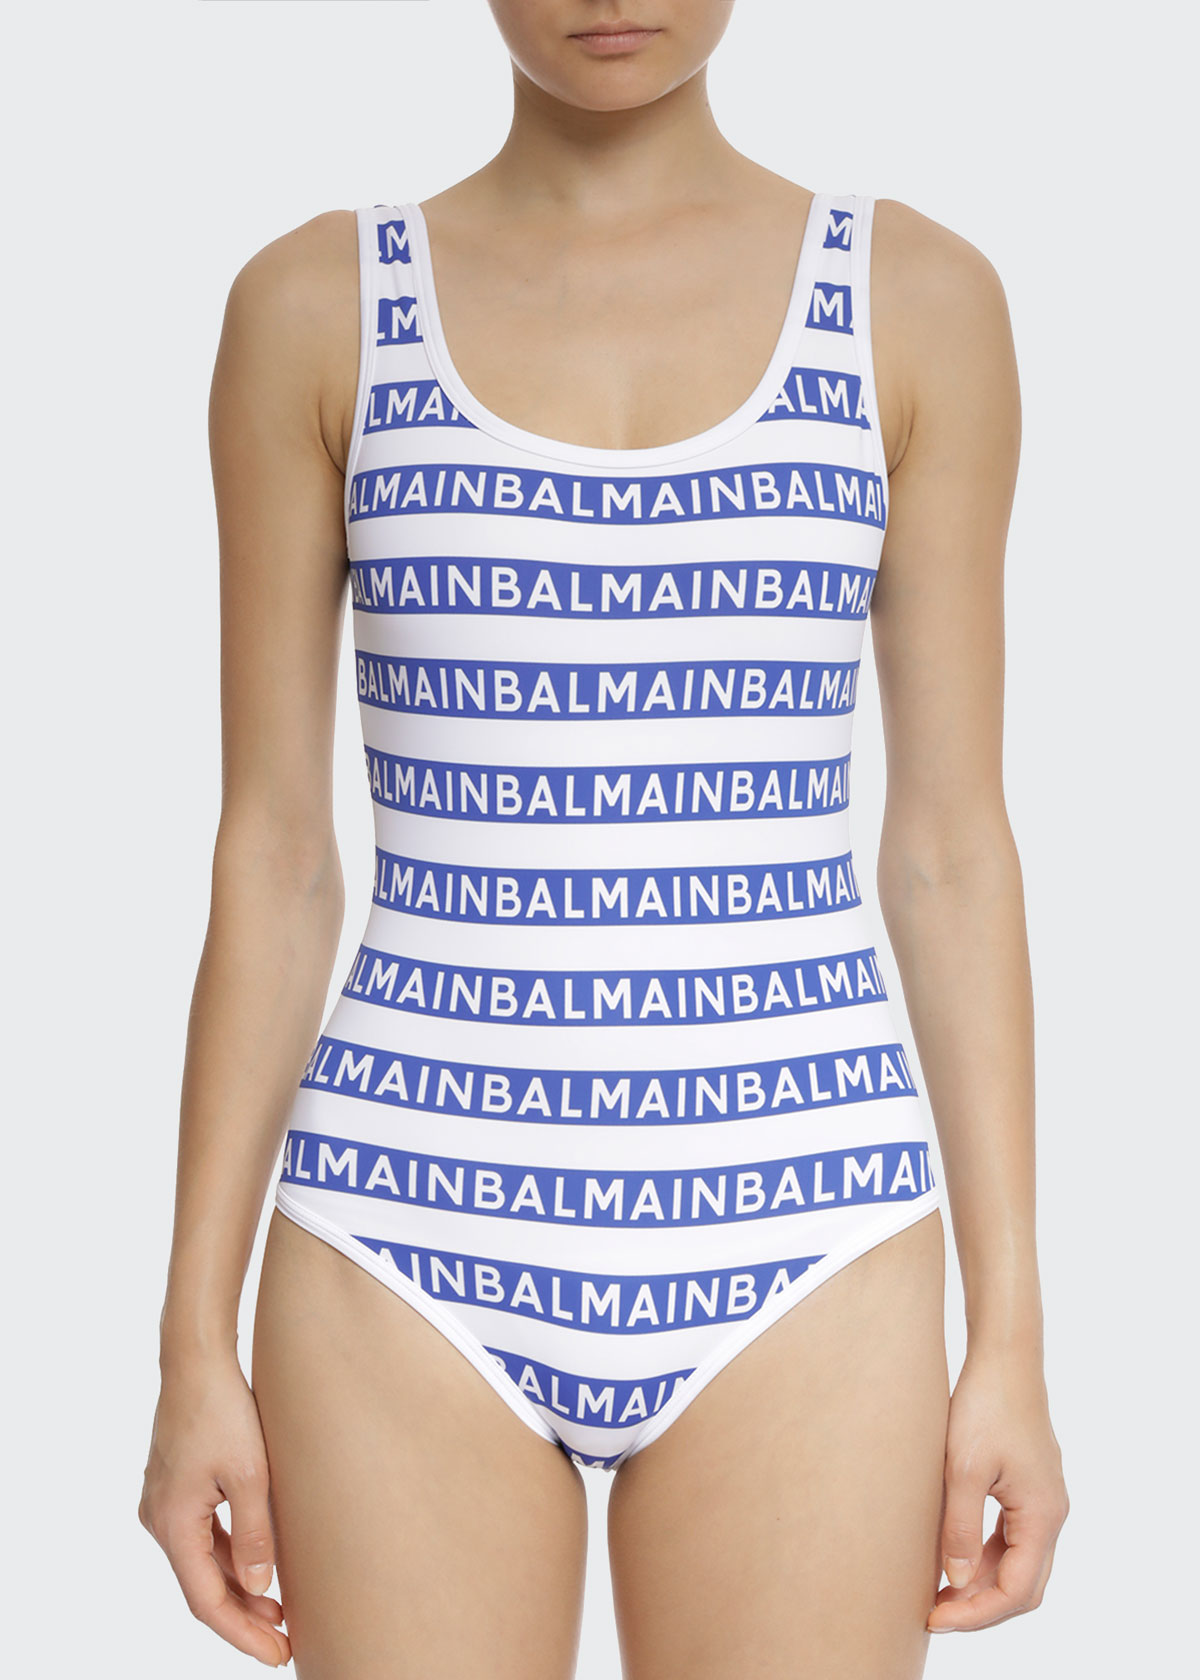 Balmain Icon Stripes Tank One-Piece Swimsuit in Blue and White